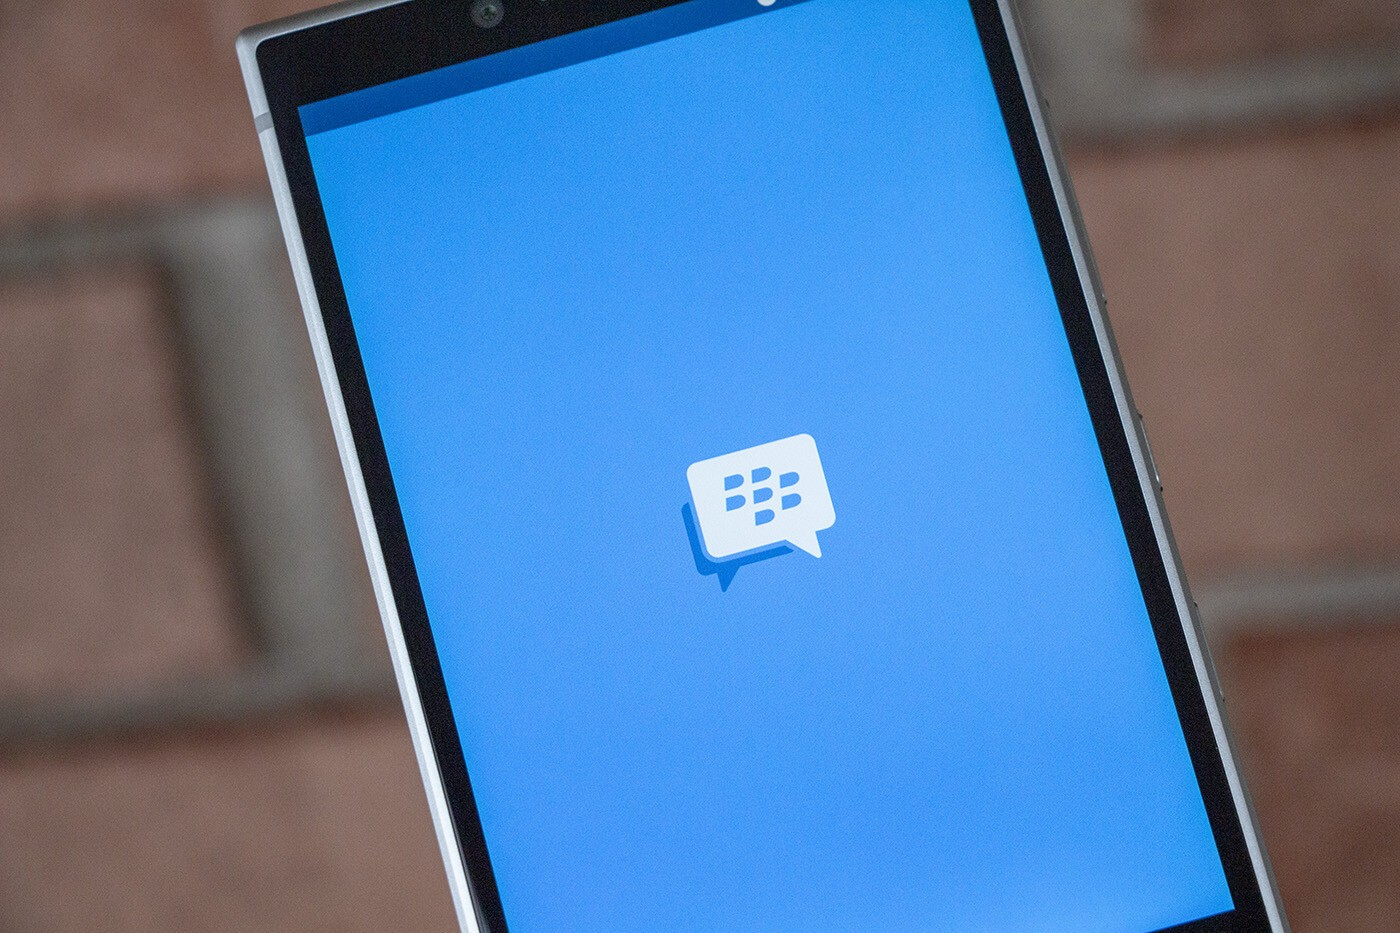 How to subscribe to BBM Enterprise on Android | CrackBerry